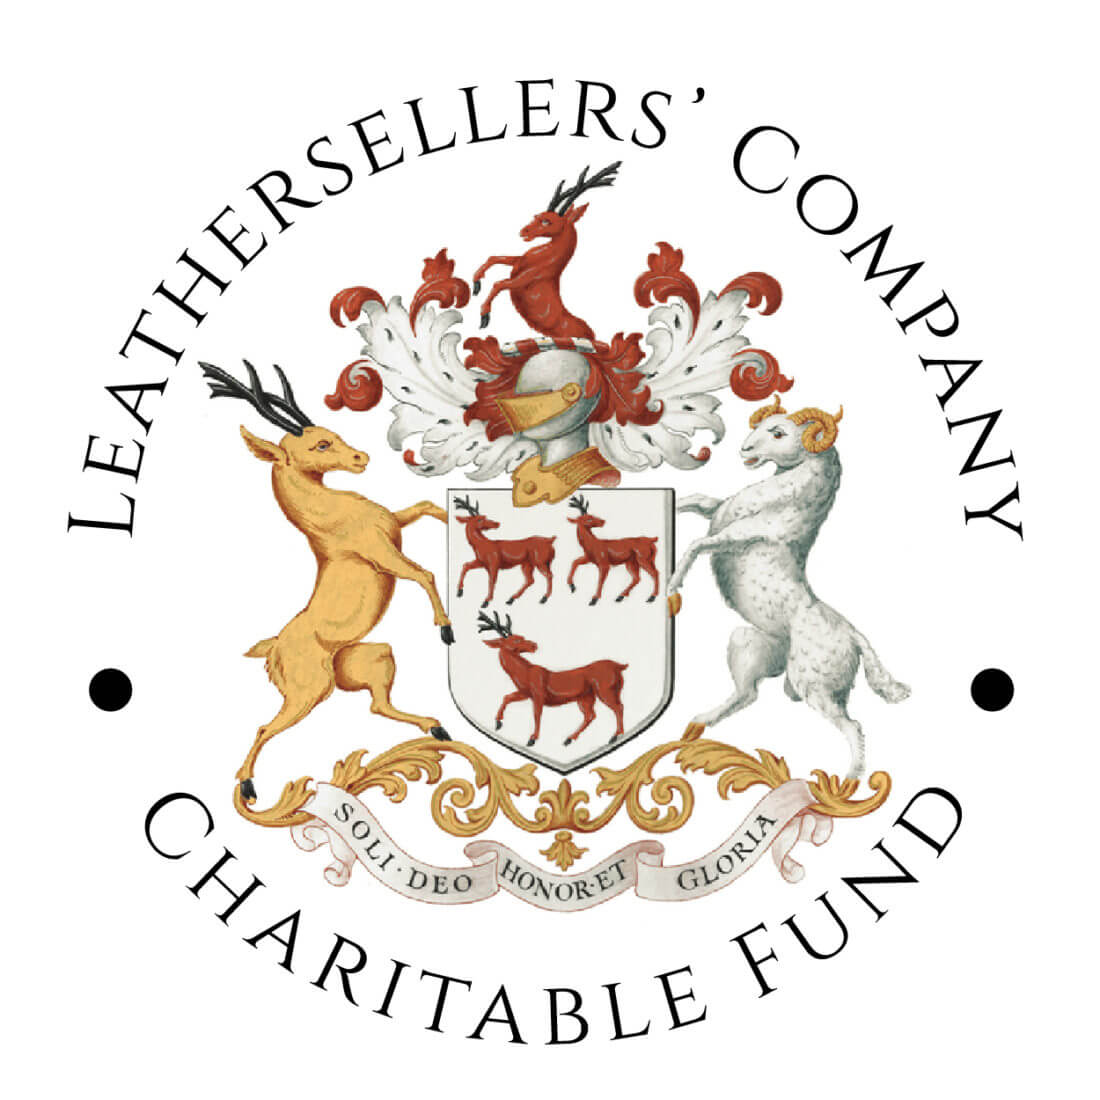 Leathersellers' Company